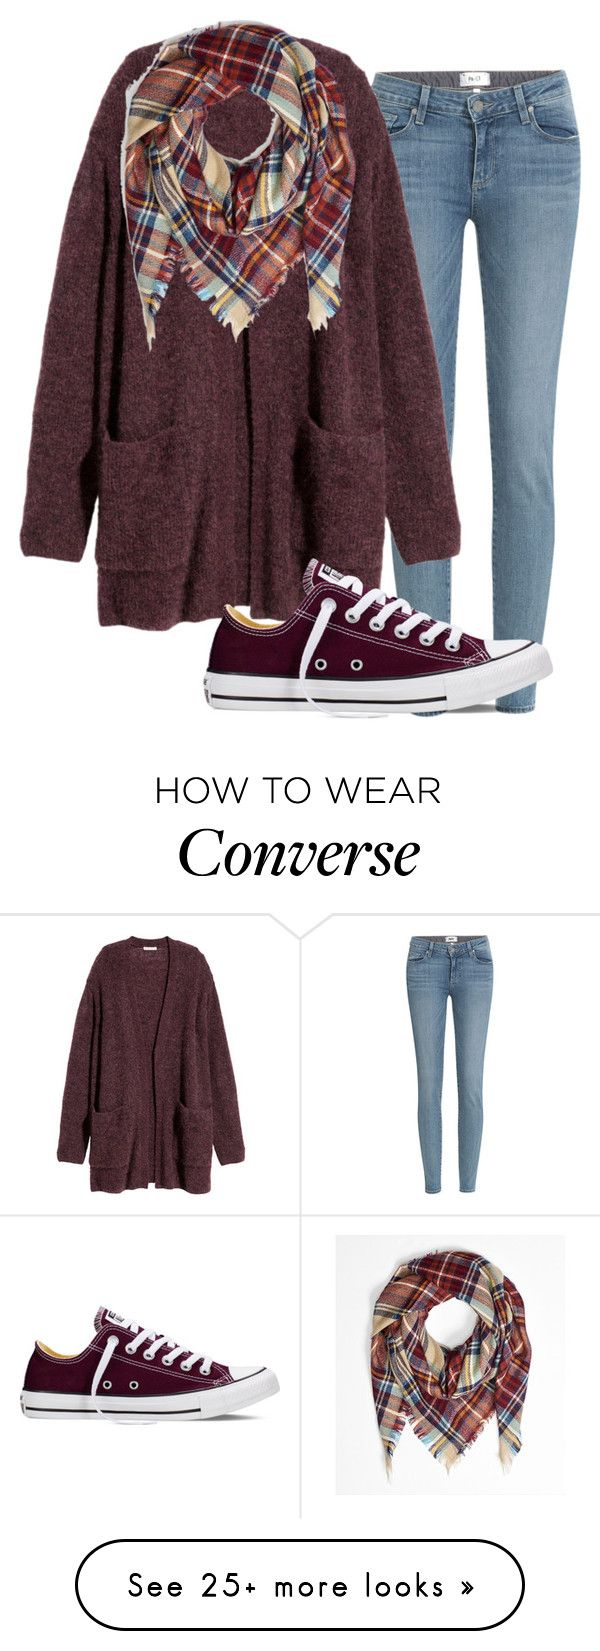 """Comment and follow to be in tag list..."" by abbeygracefromouterspace on Polyvore featuring Paige Denim, H&M, Converse, women's clothing, women, female, woman, misses and juniors"